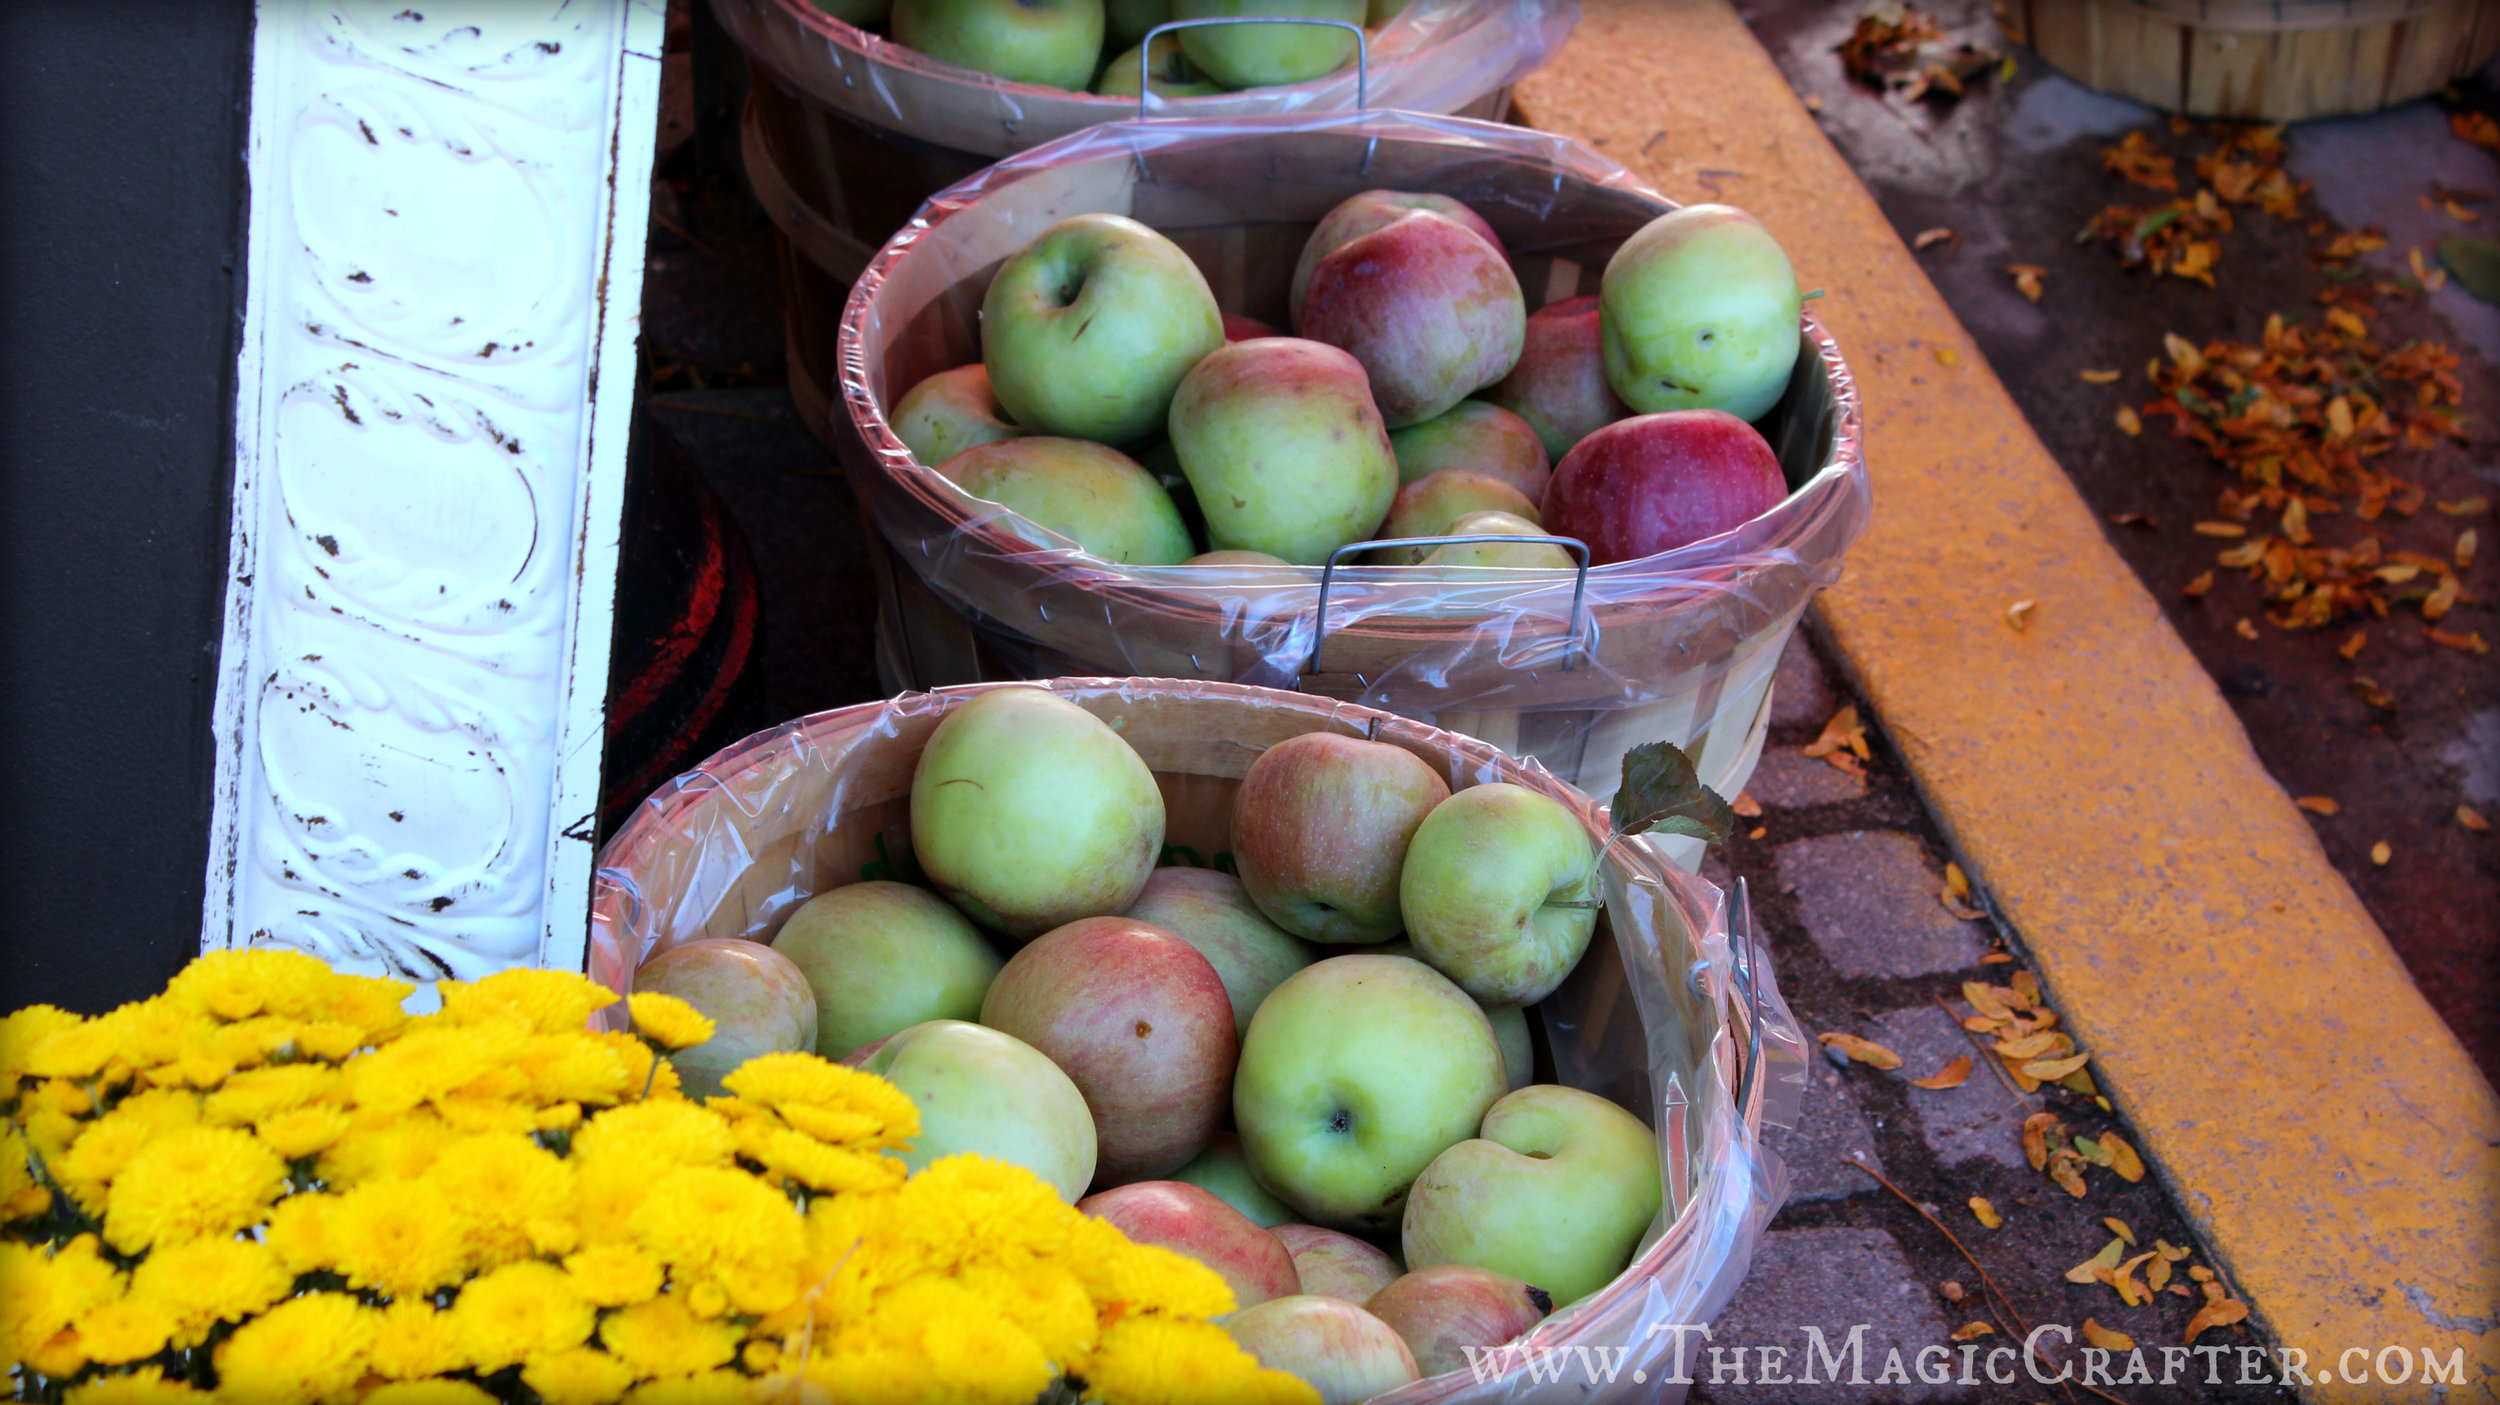 Large baskets full of apples like this seemed to fill every inch of the sidewalk in downtown Charlevoix. There were so many different types of apples to be found. Who knew one fruit could come in so many different flavors?